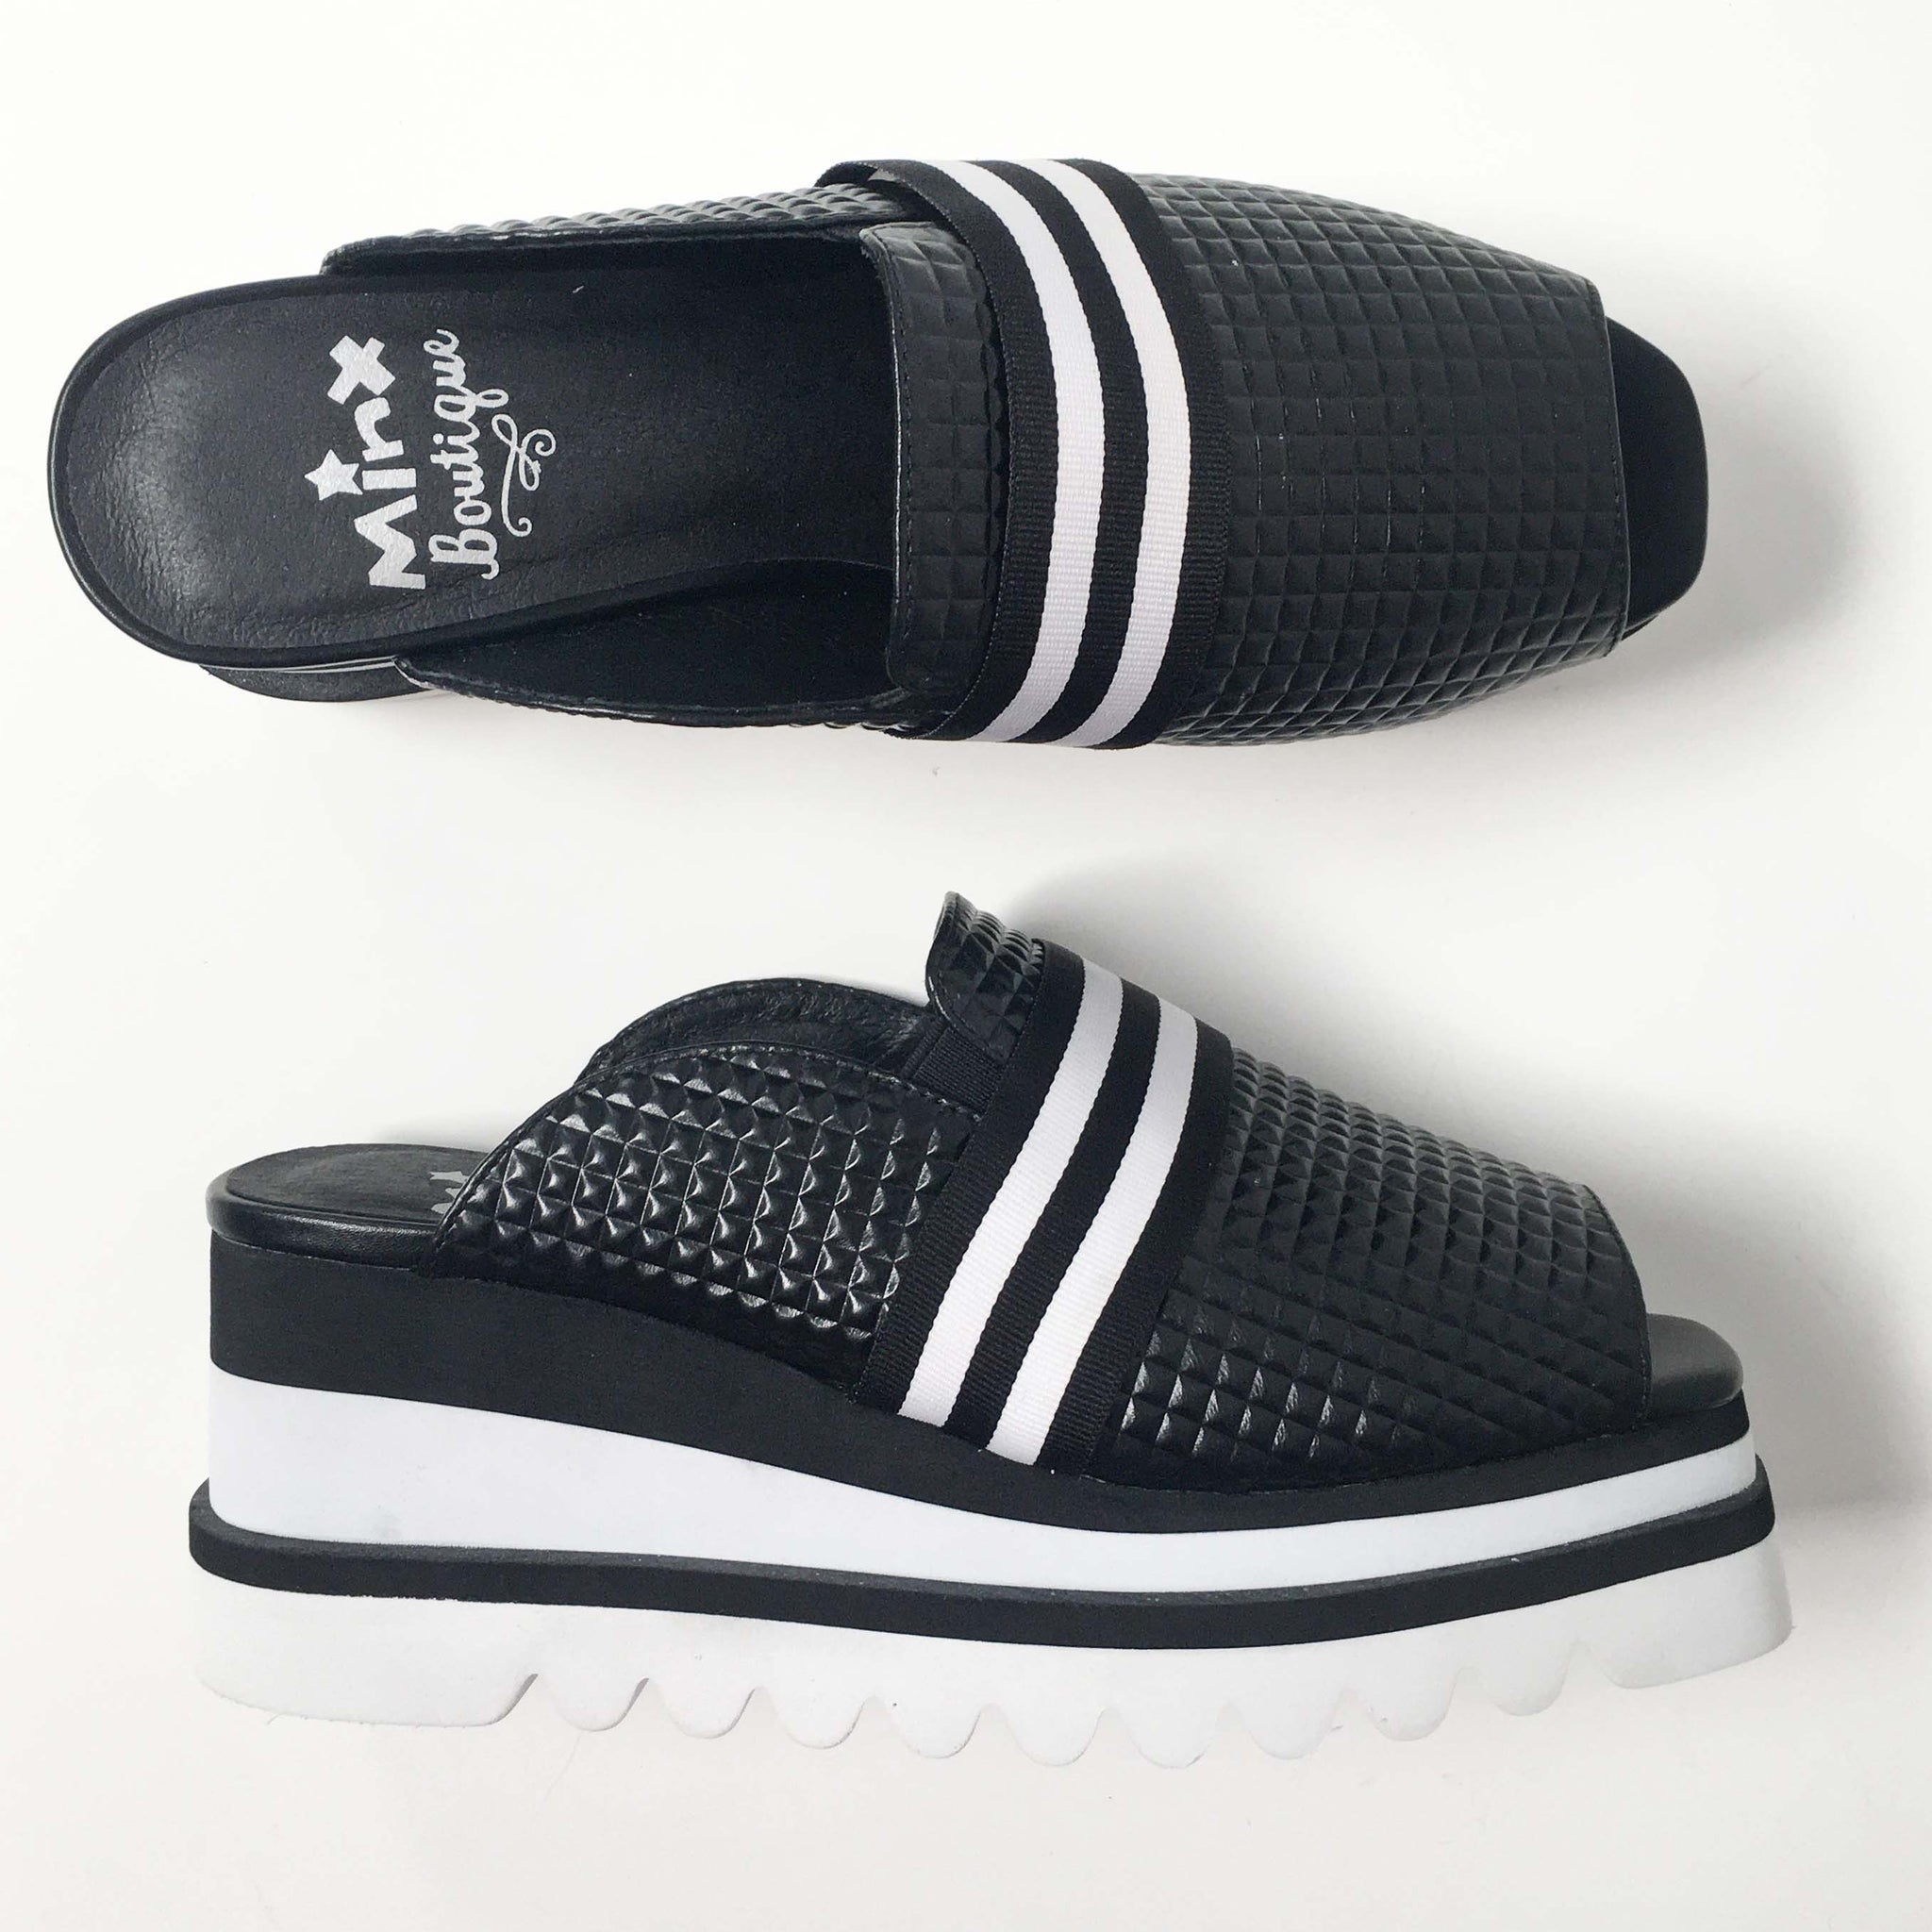 New Chill - Black Hex/White Stripe